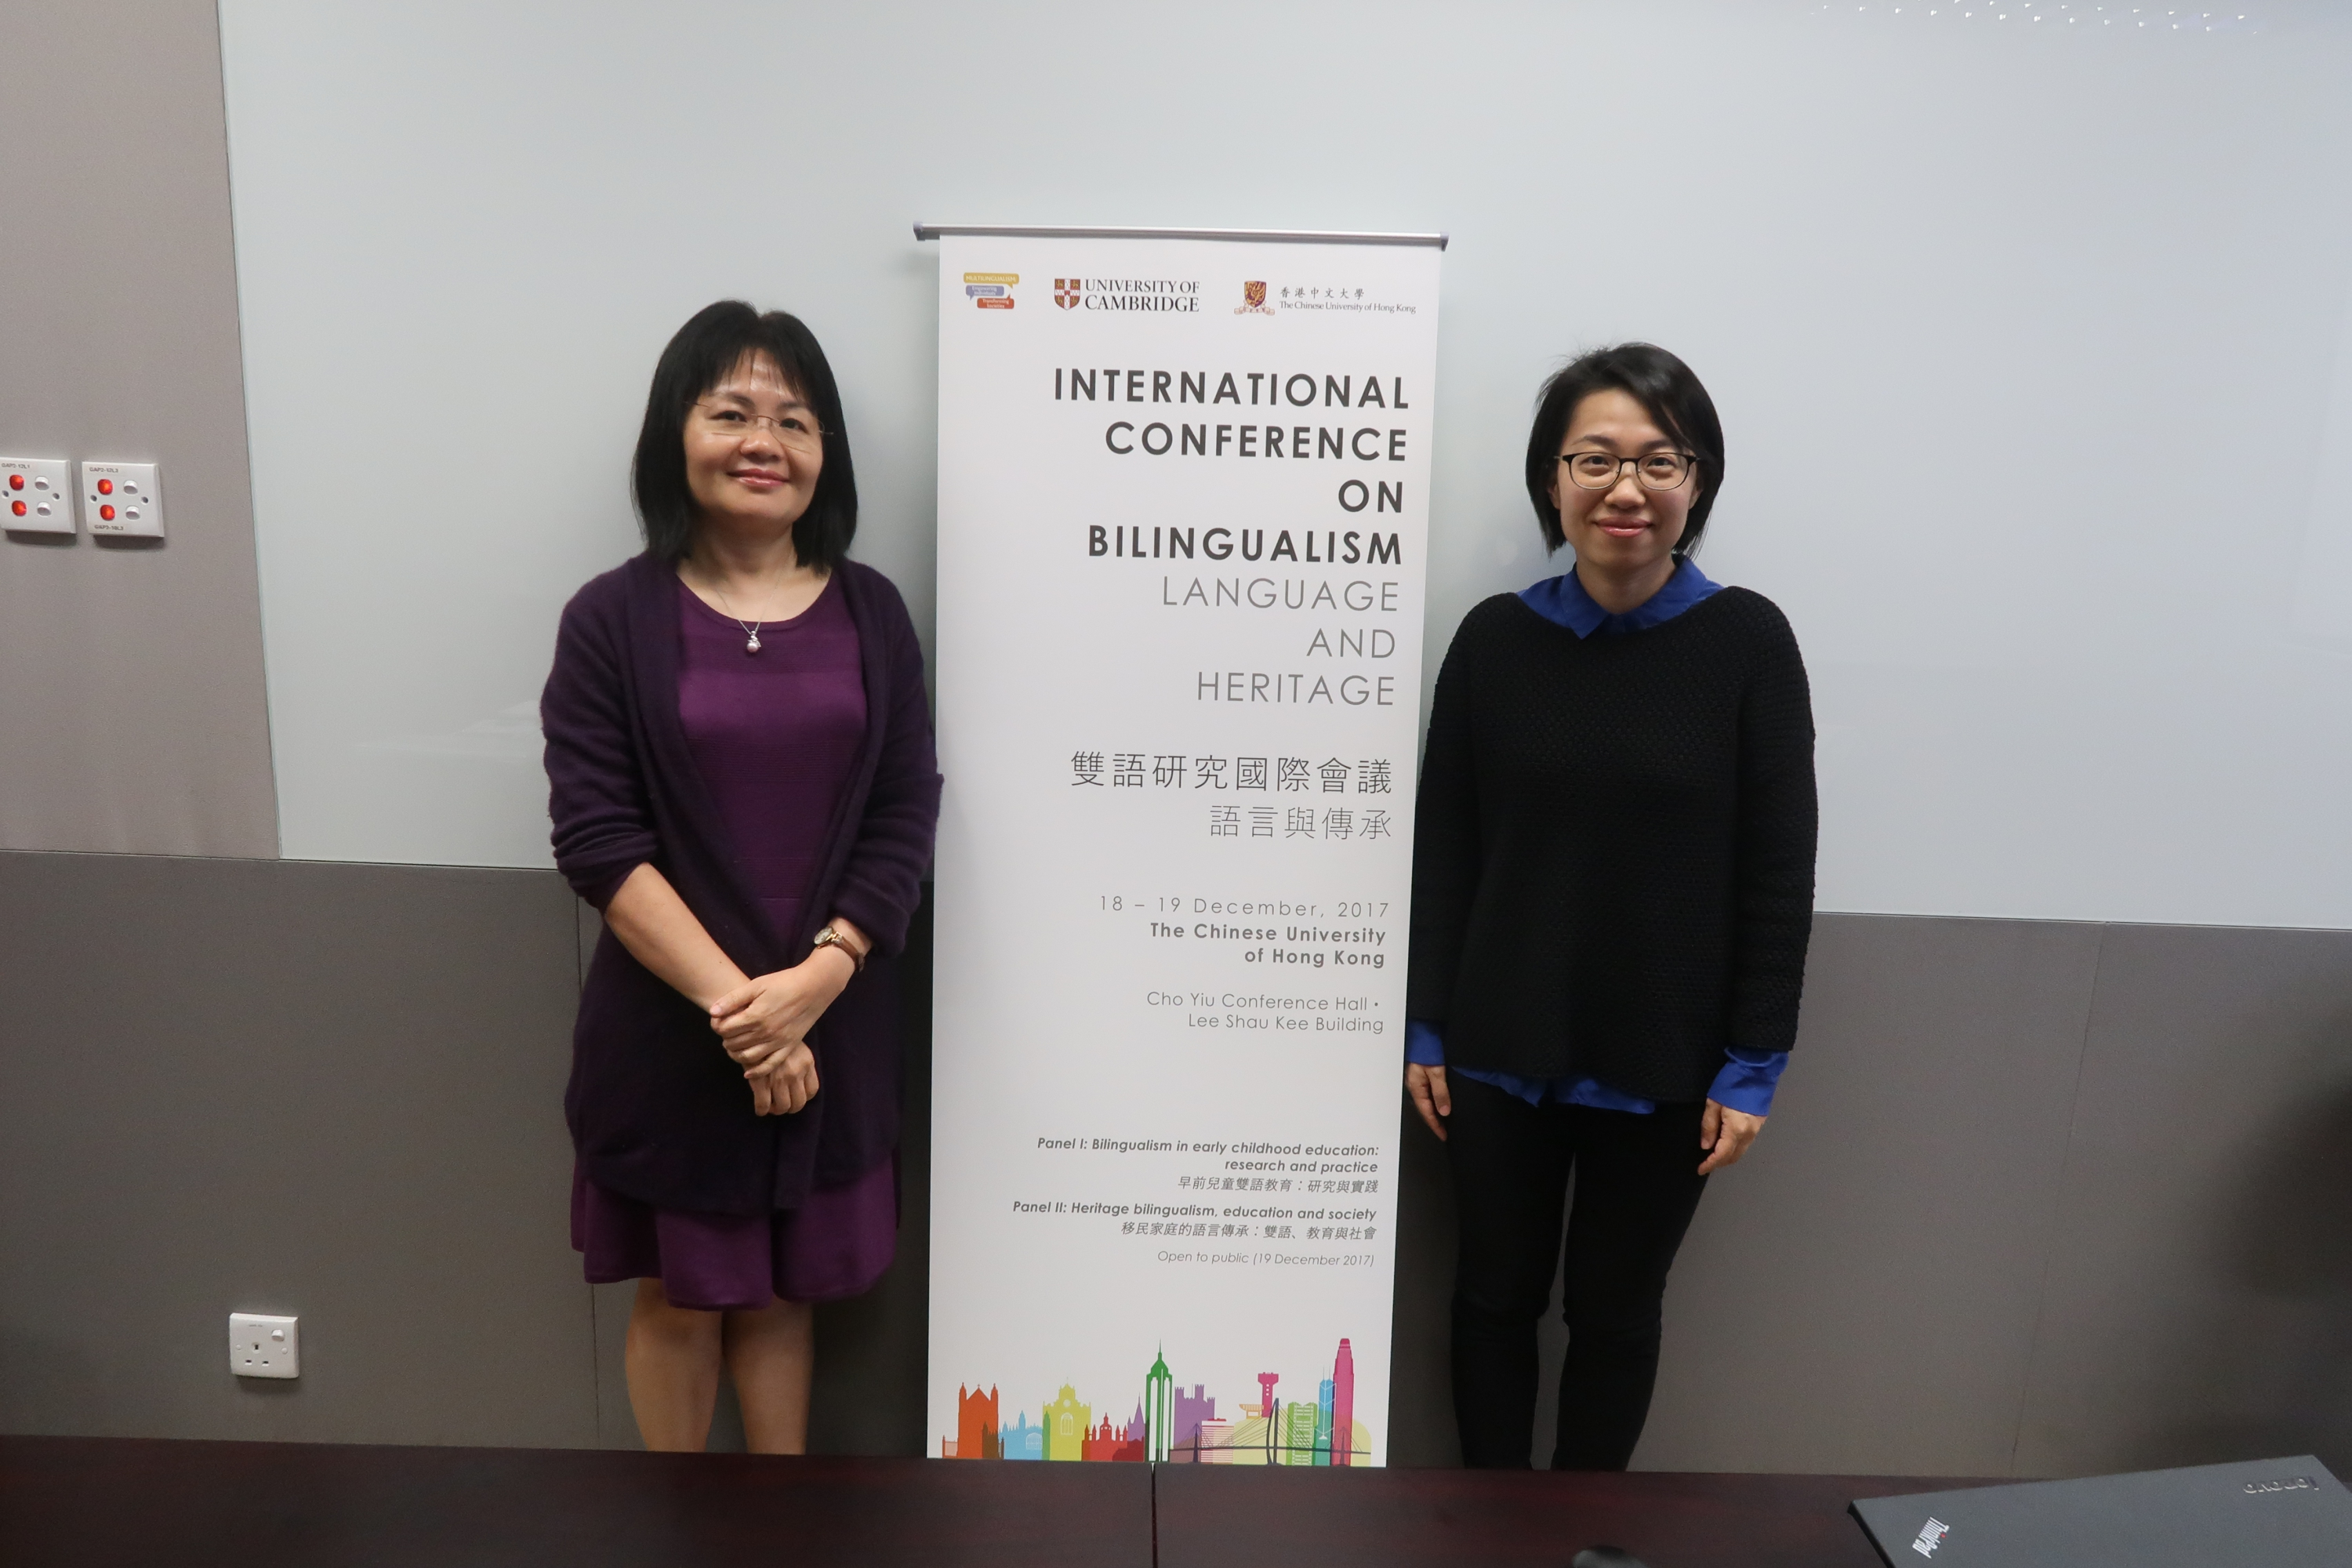 Prof. Virginia Yip (left) and Prof. Ziyin Mai introduce the newly established University of Cambridge-Chinese University of Hong Kong Joint Laboratory for Bilingualism which will be launched at the International Conference on Bilingualism: Language and Heritage to be held on 18-19 December 2017 in CUHK